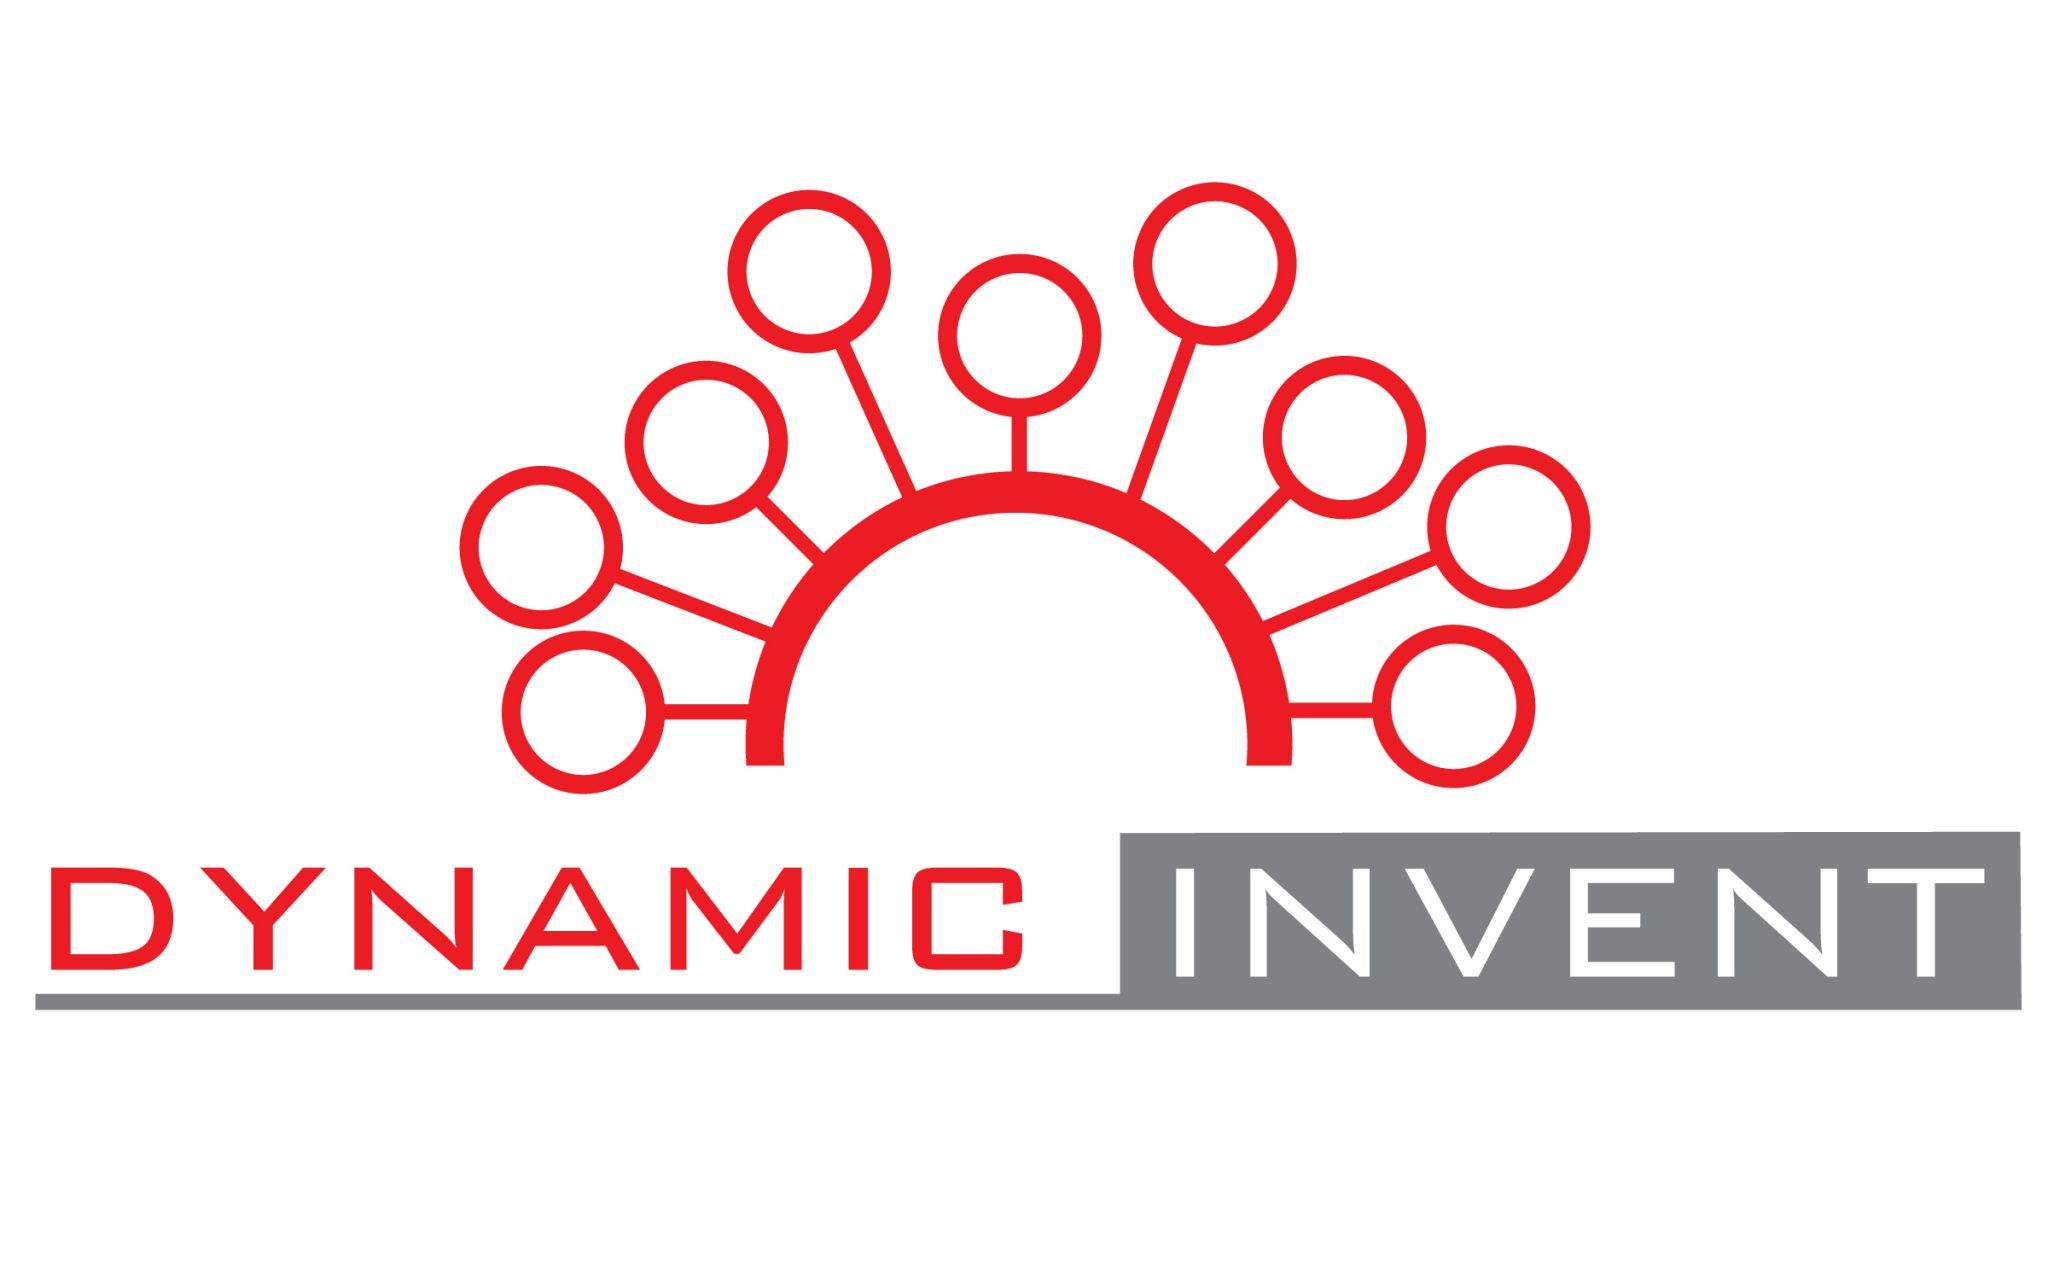 DYNAMIC INVENT